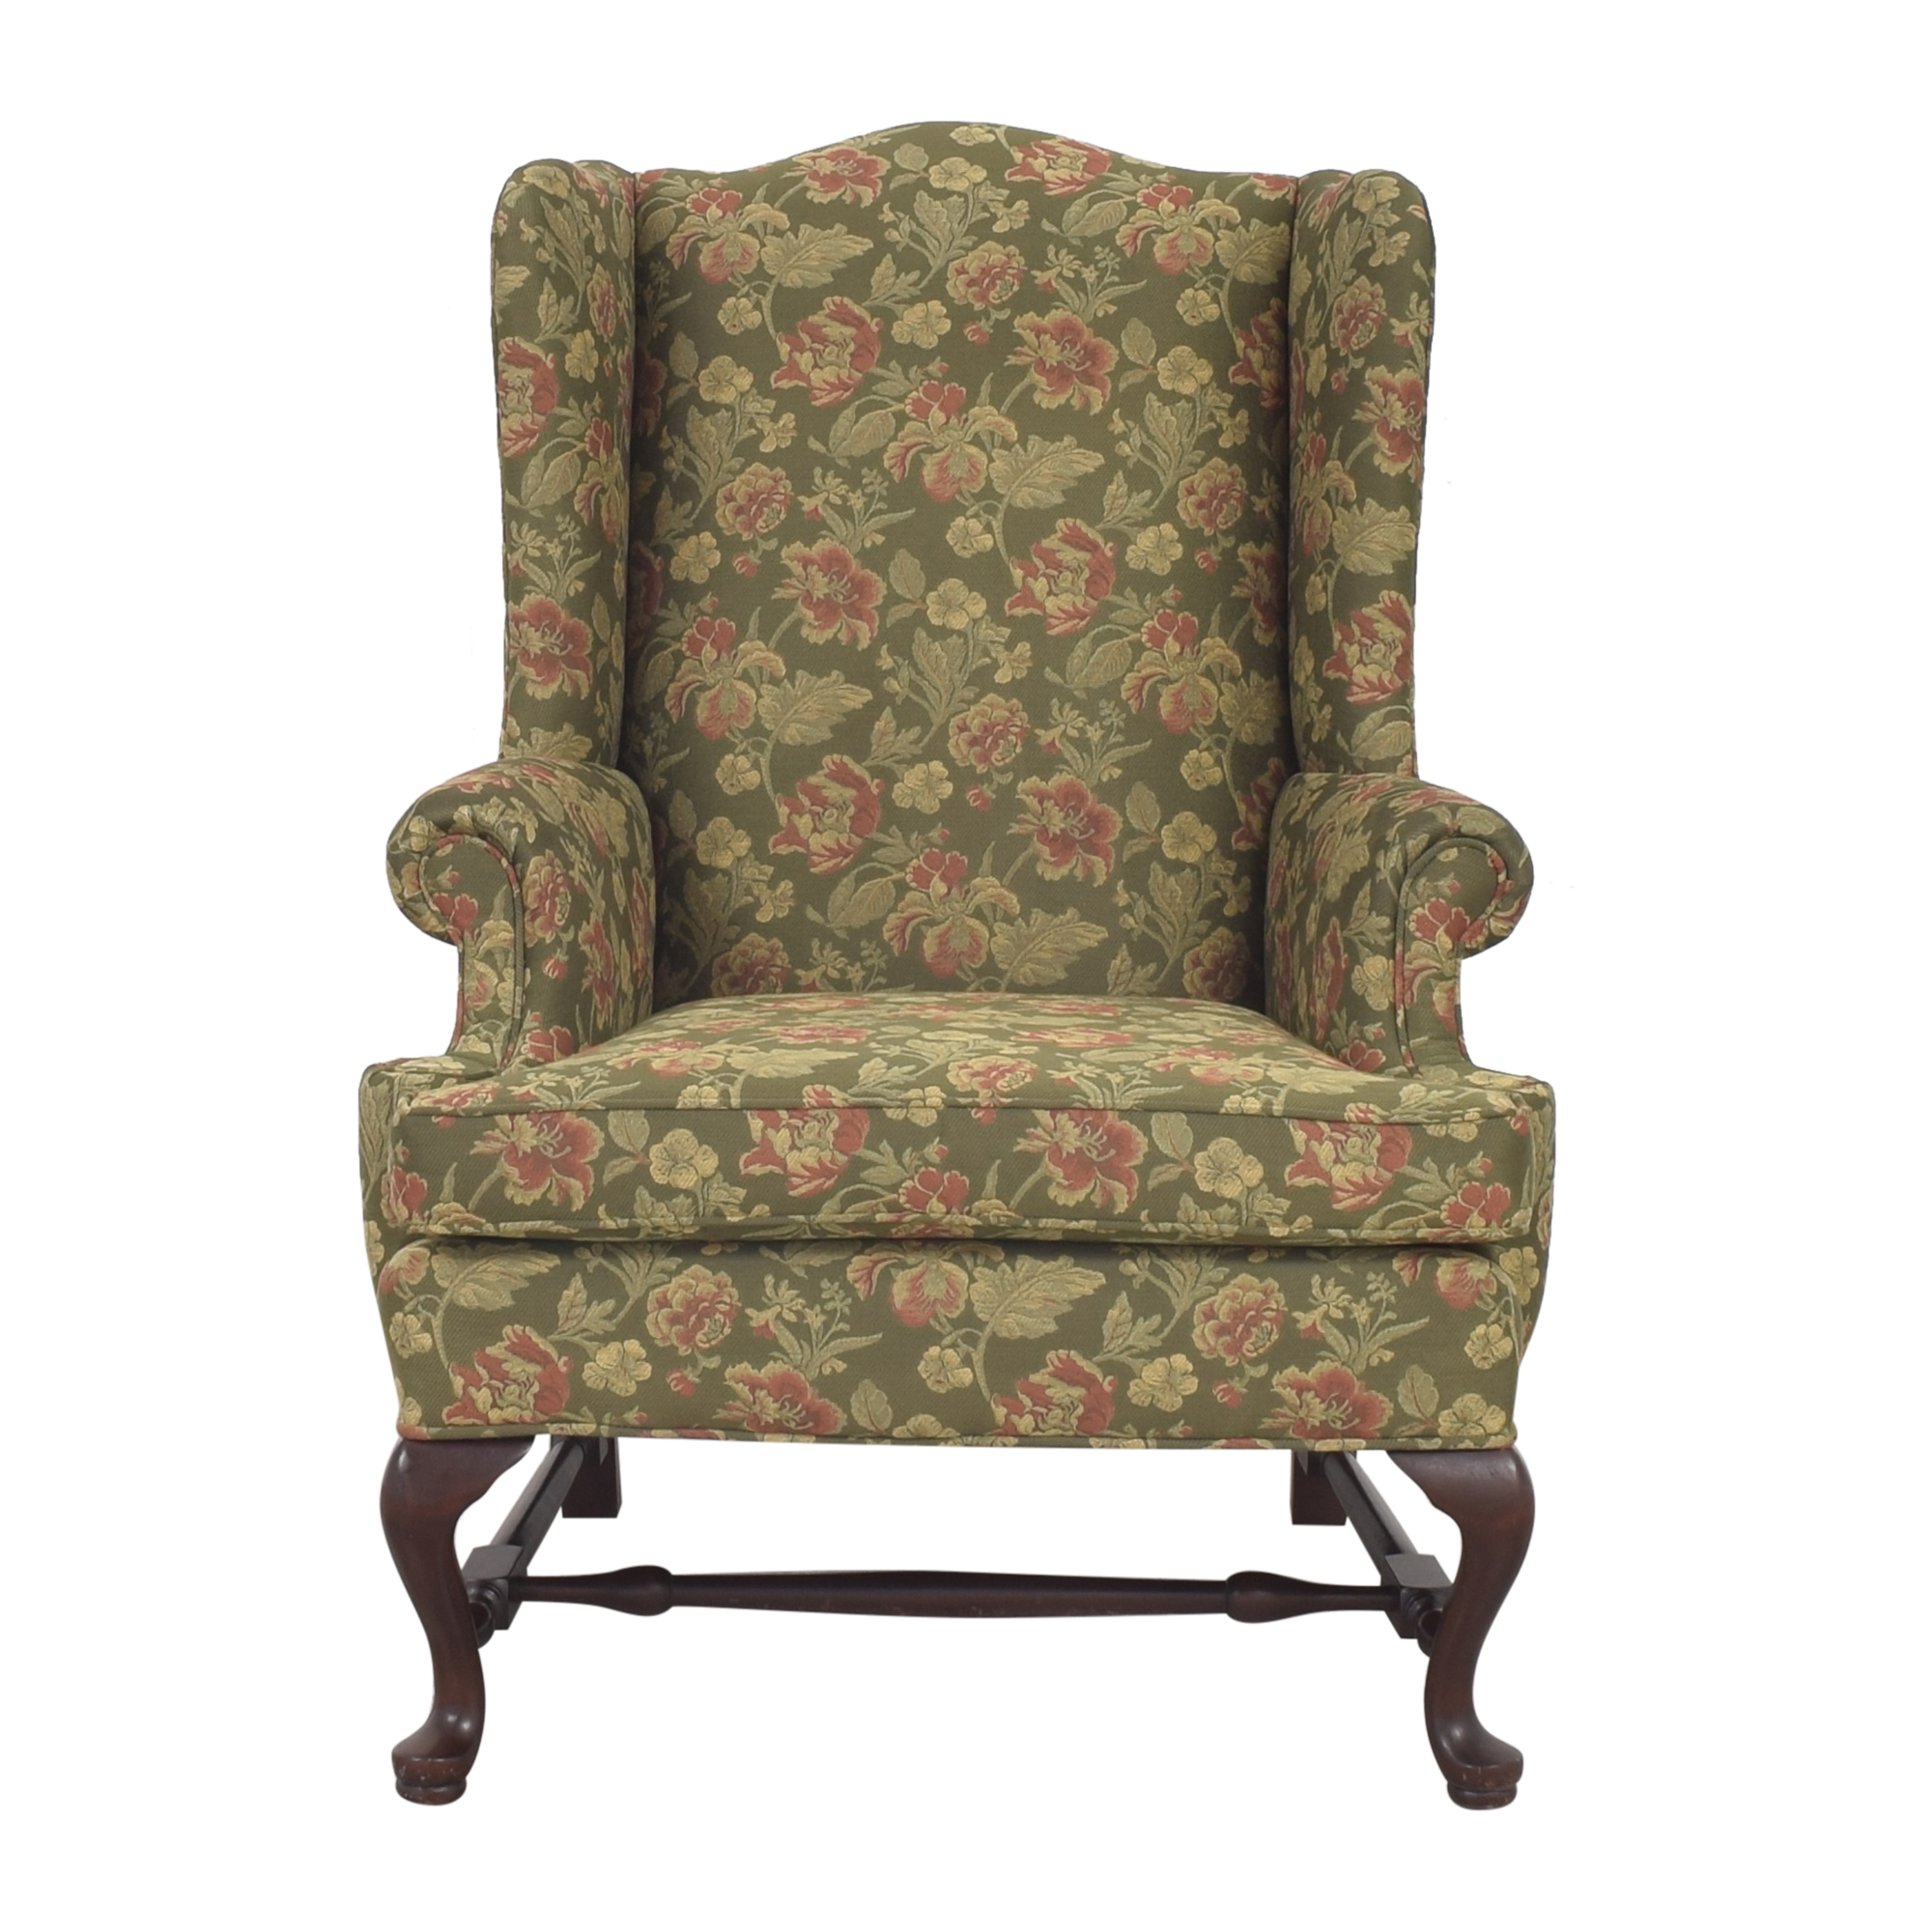 Ethan Allen Ethan Allen Wing Back Accent Chair nyc